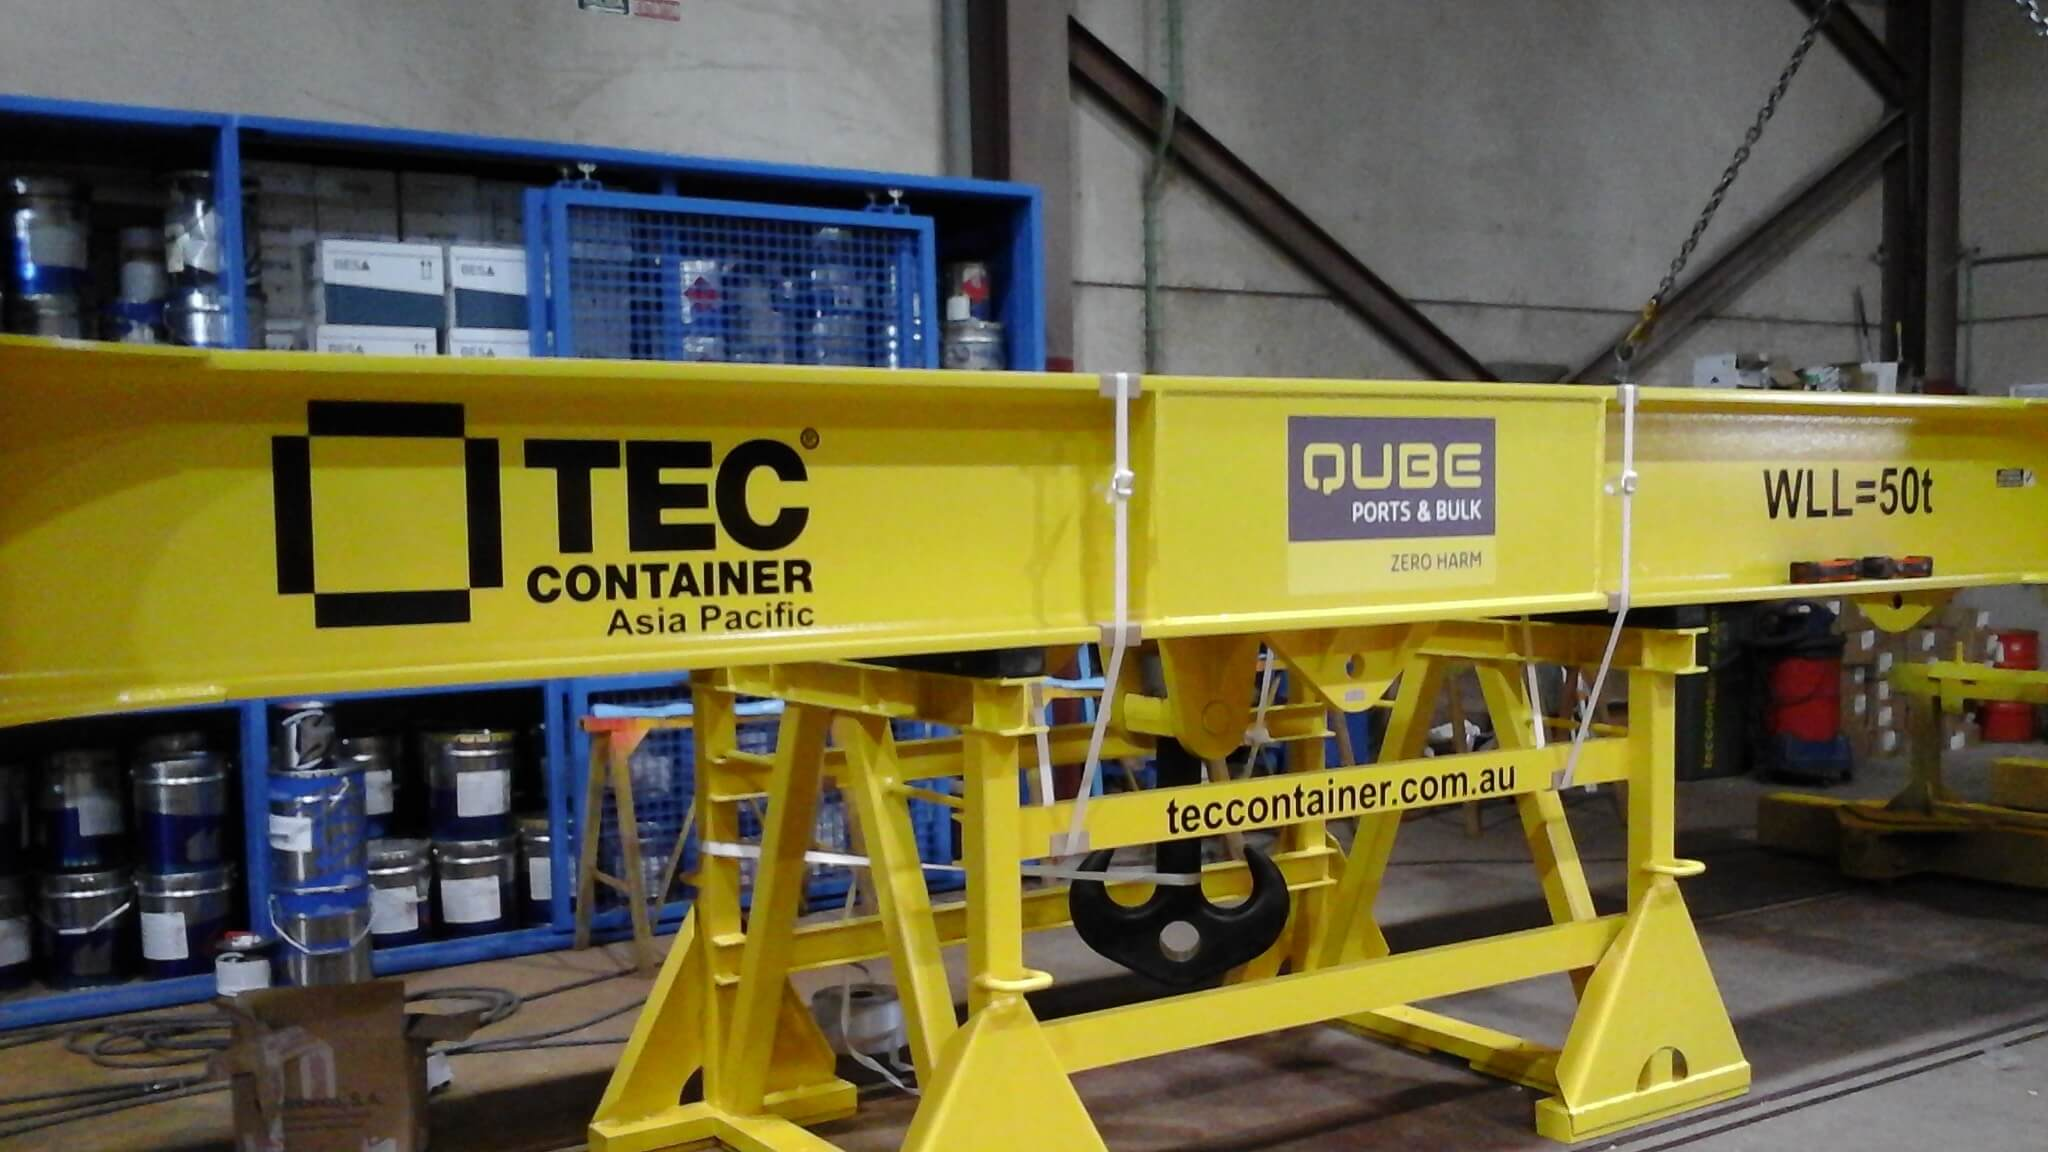 Qube Buys Reachstacker Attachment from Tec Container